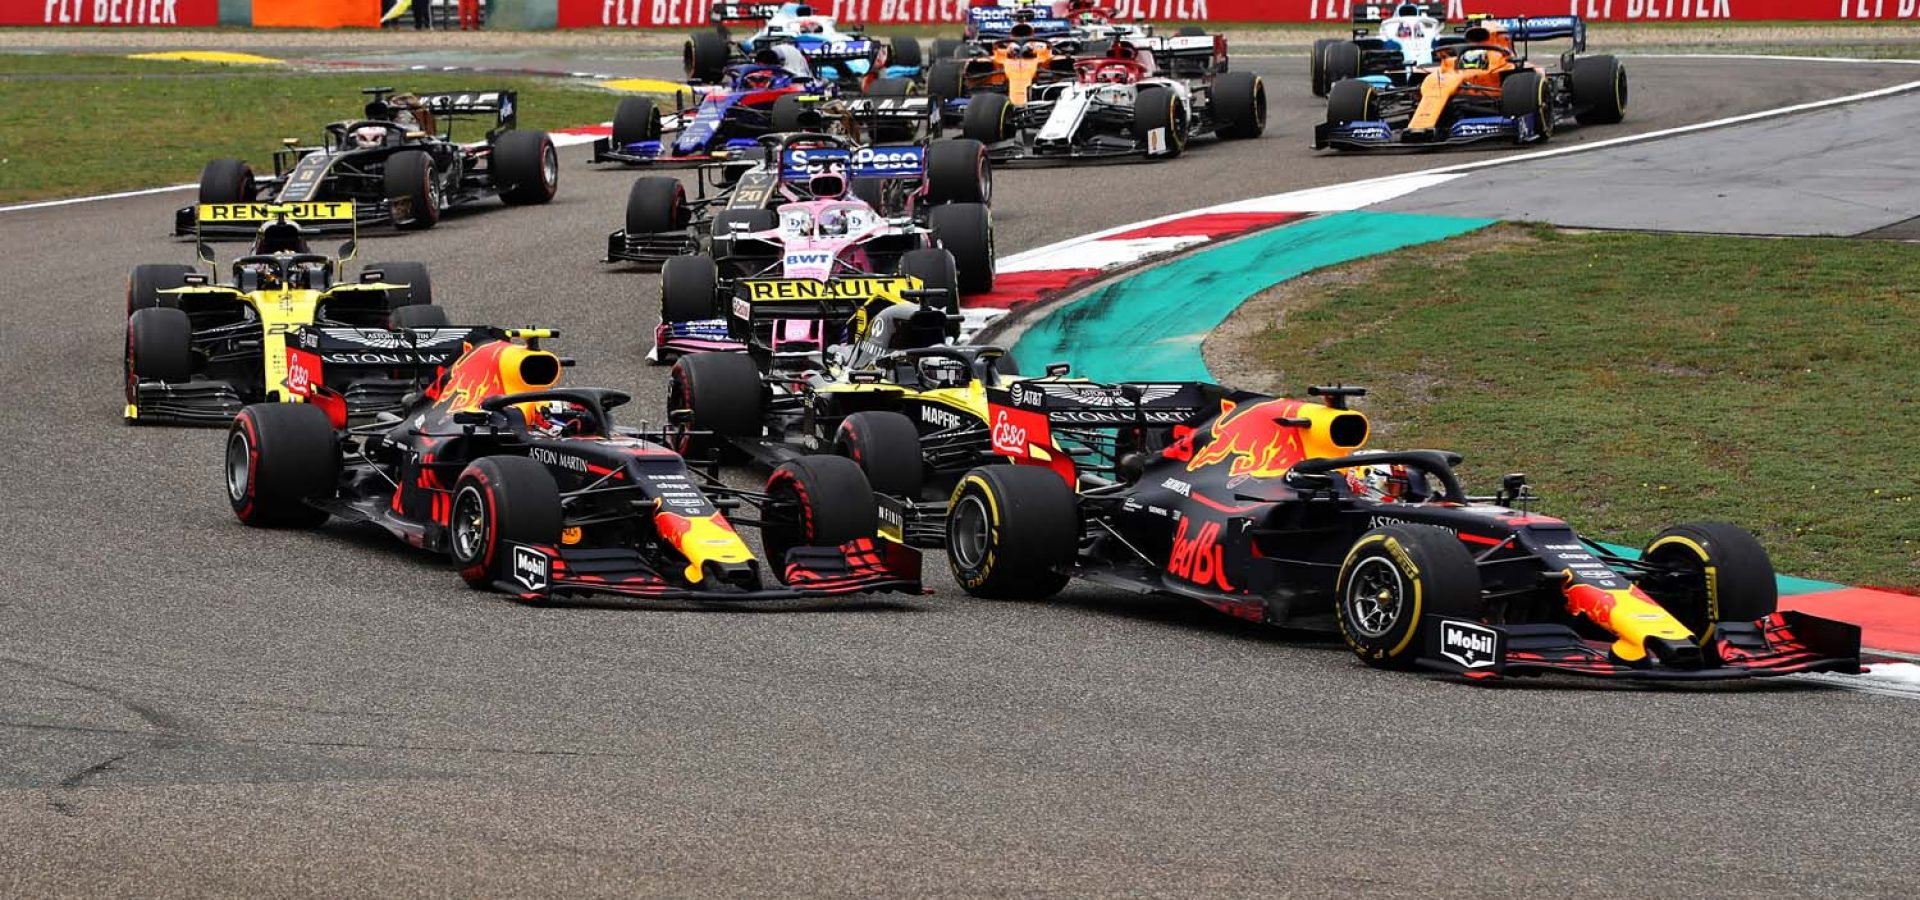 SHANGHAI, CHINA - APRIL 14: Max Verstappen of the Netherlands driving the (33) Aston Martin Red Bull Racing RB15 leads Pierre Gasly of France driving the (10) Aston Martin Red Bull Racing RB15 at the start during the F1 Grand Prix of China at Shanghai International Circuit on April 14, 2019 in Shanghai, China. (Photo by Mark Thompson/Getty Images) // Getty Images / Red Bull Content Pool  // AP-1Z1CYAMNH1W11 // Usage for editorial use only // Please go to www.redbullcontentpool.com for further information. //